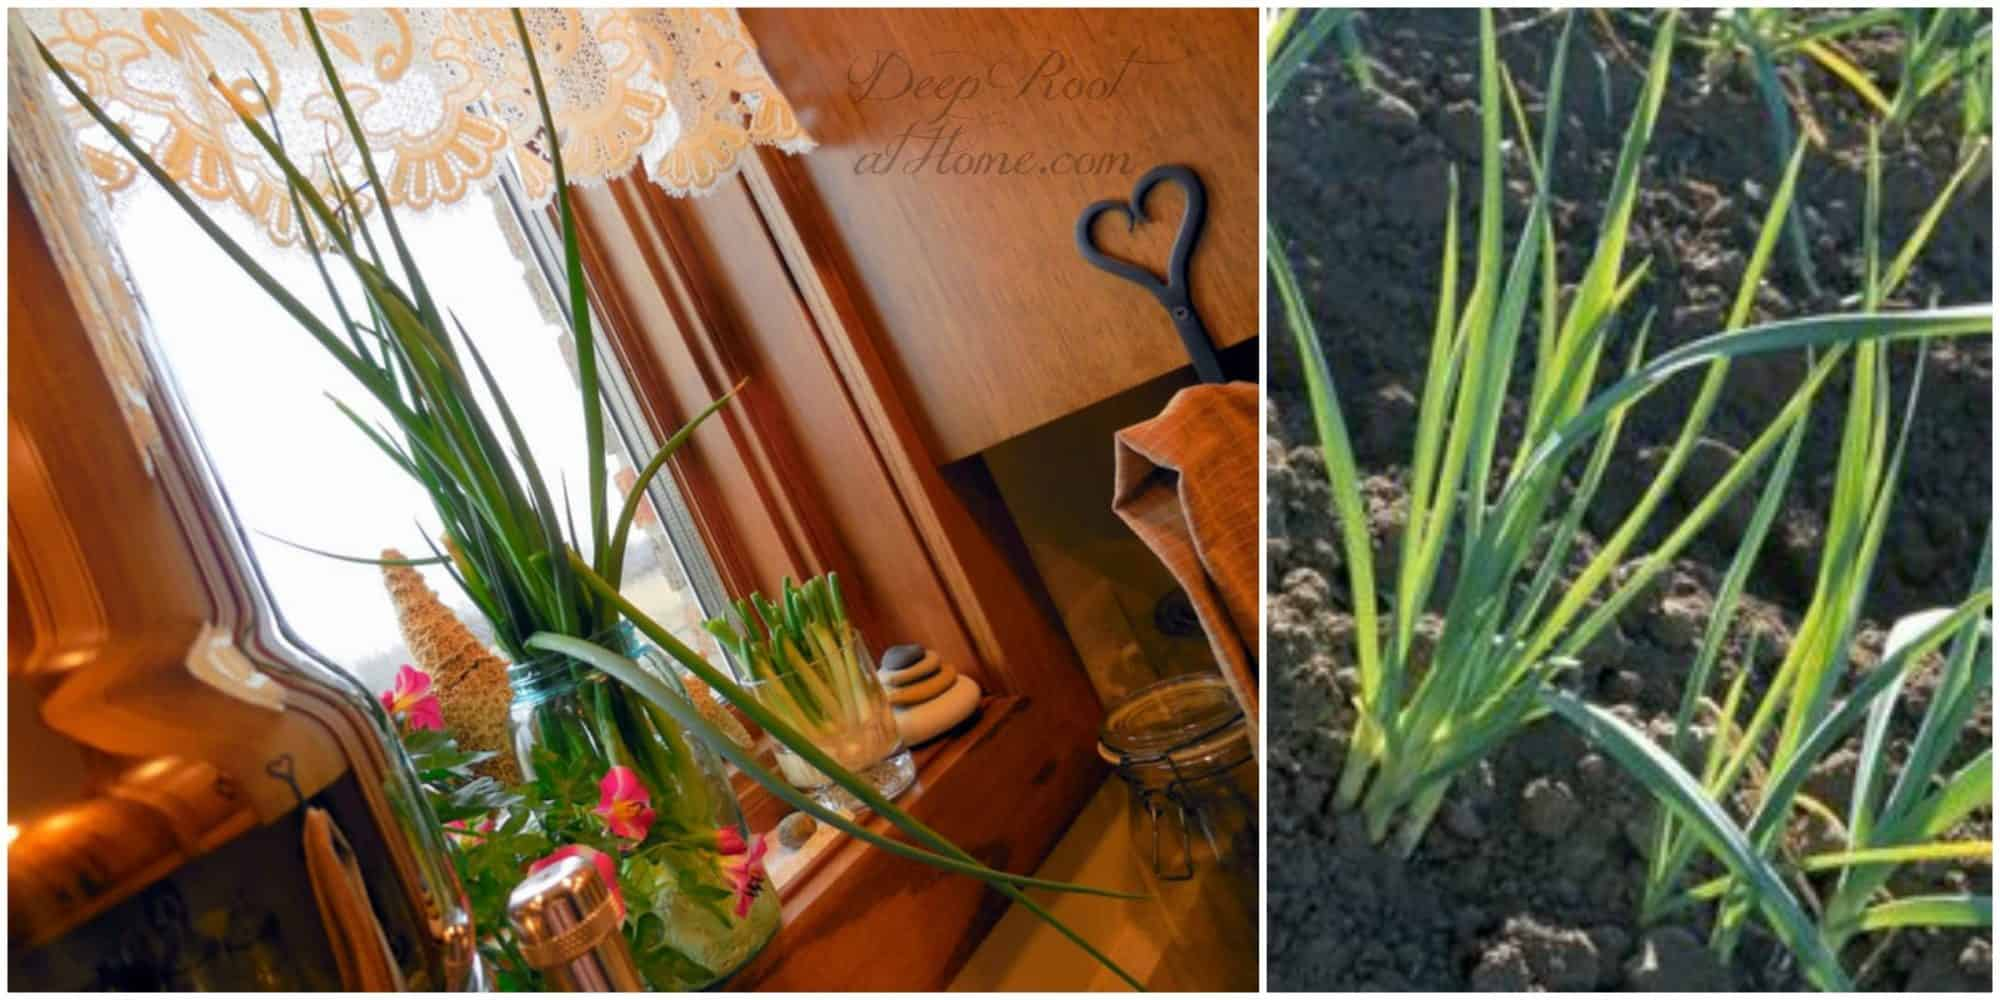 onions that have grown tall and tender...in garden